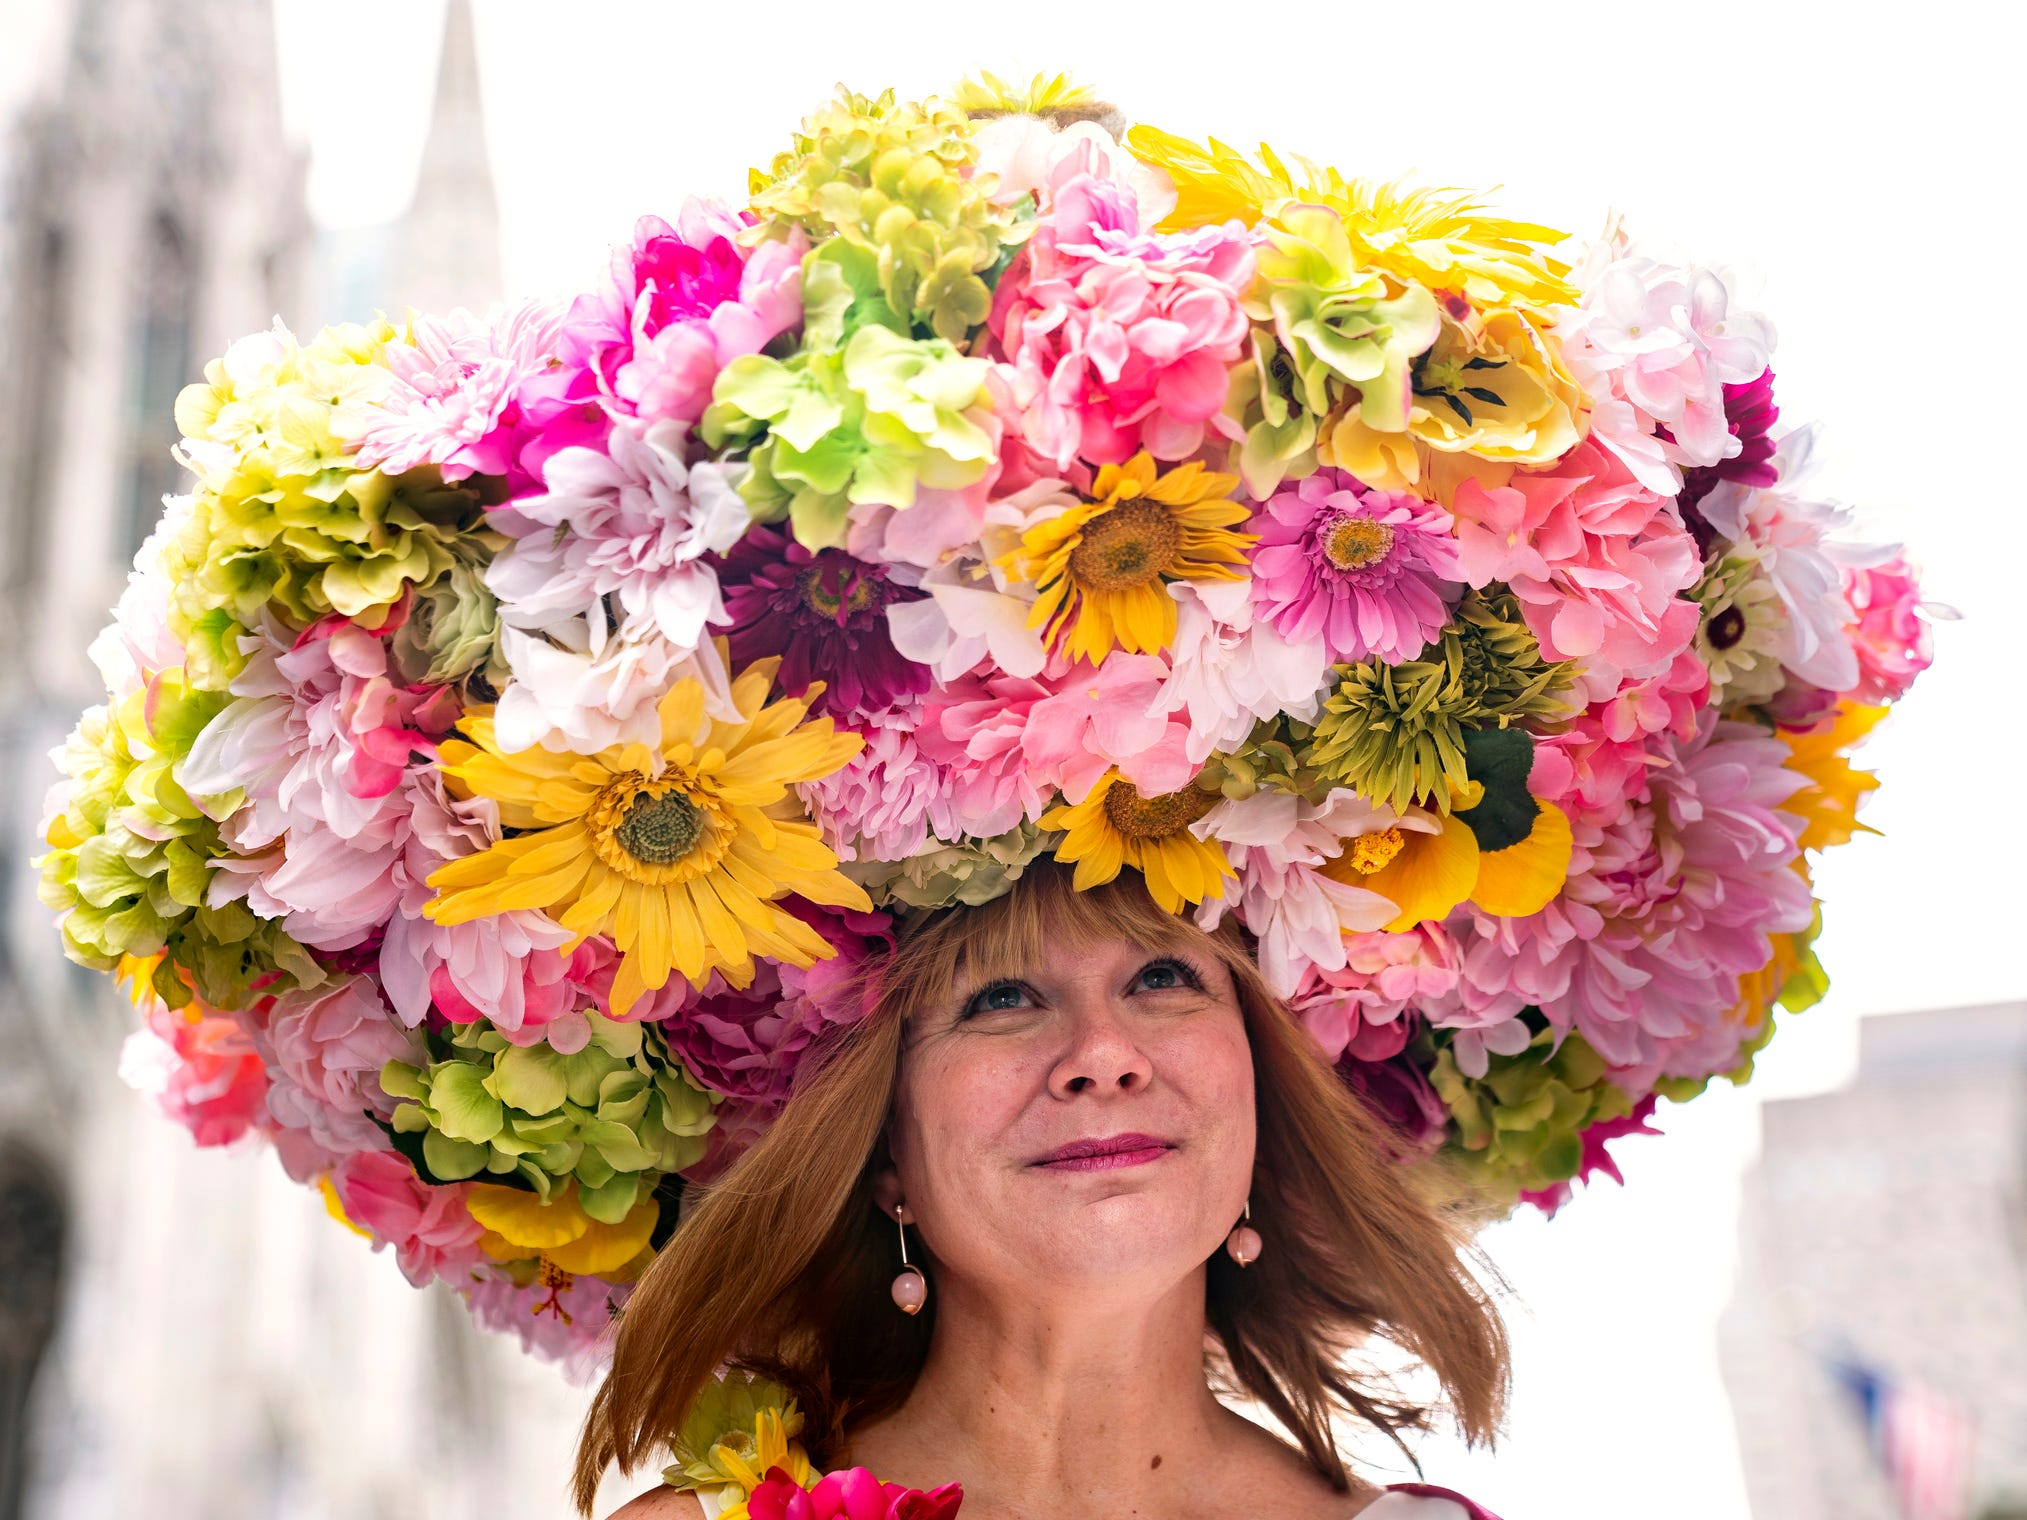 A participant marches during the Easter Parade and Bonnet Festival  in New York on on April 21, 2019.